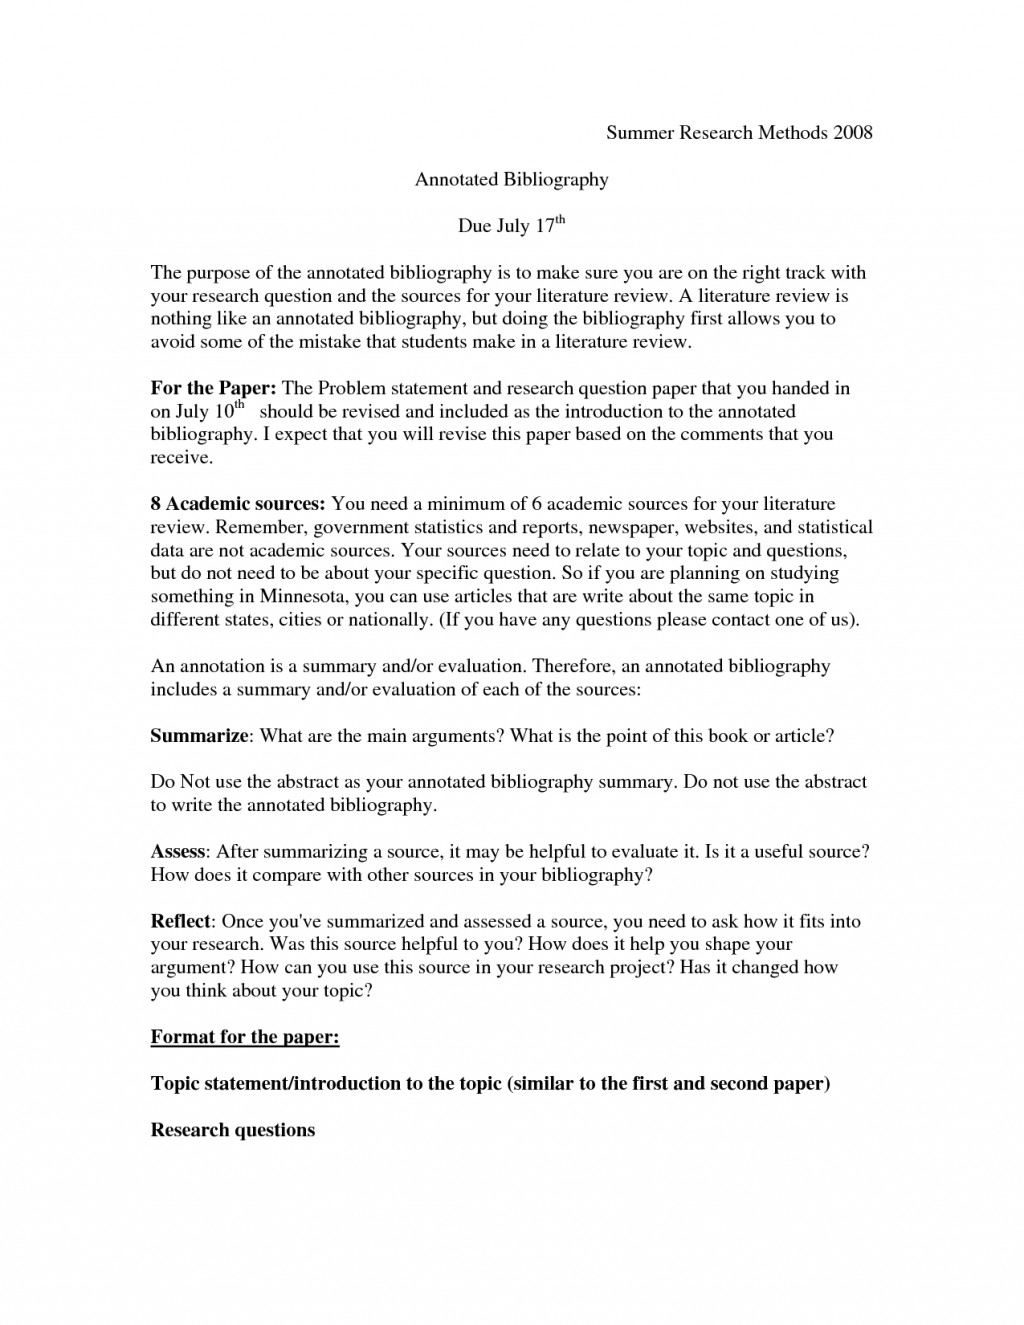 005 Annotated Bibliography Vs Research Paper Bunch Ideas Of Cute Sample Shocking Free Example Use An In A Large